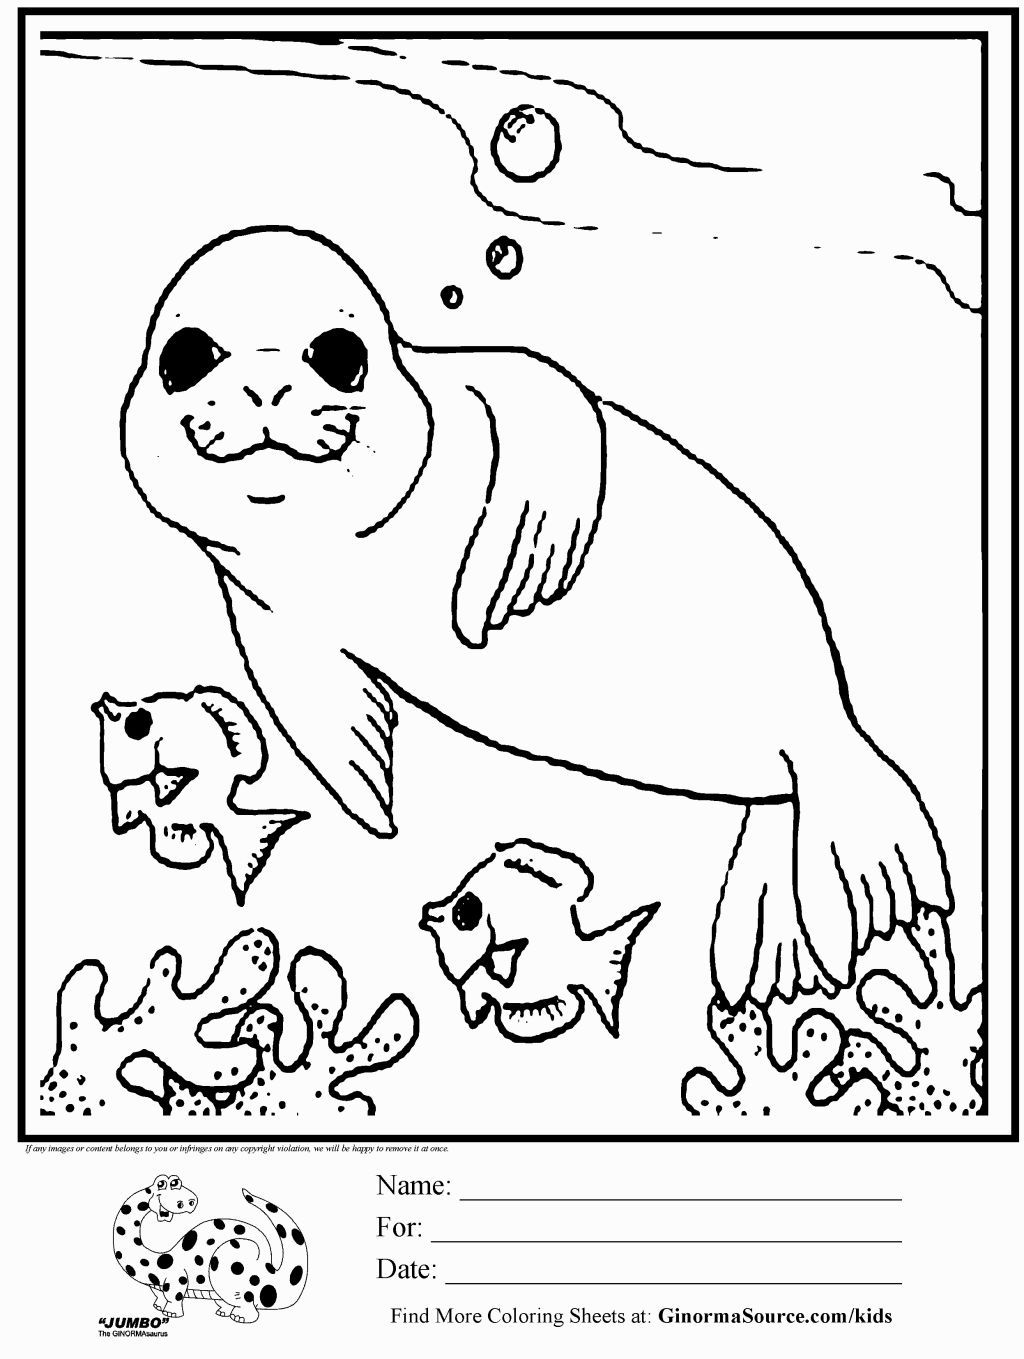 Seal Coloring Pages | Coloring Pages | Pinterest | Fingernail ...